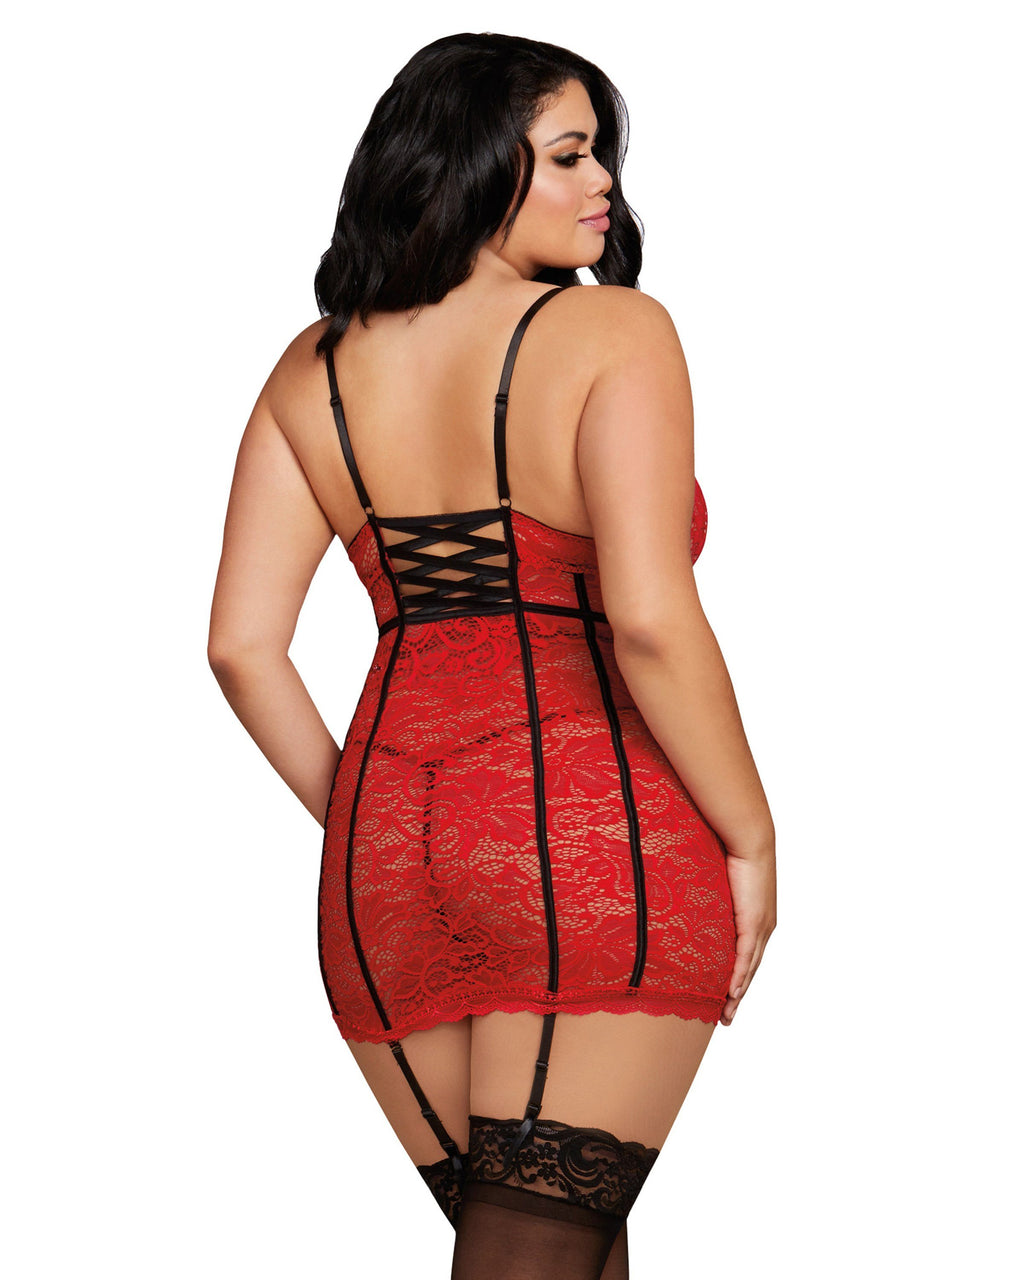 Plus Size Stretch Lace Underwire Garter Slip with G-String Garter Slip Dreamgirl International